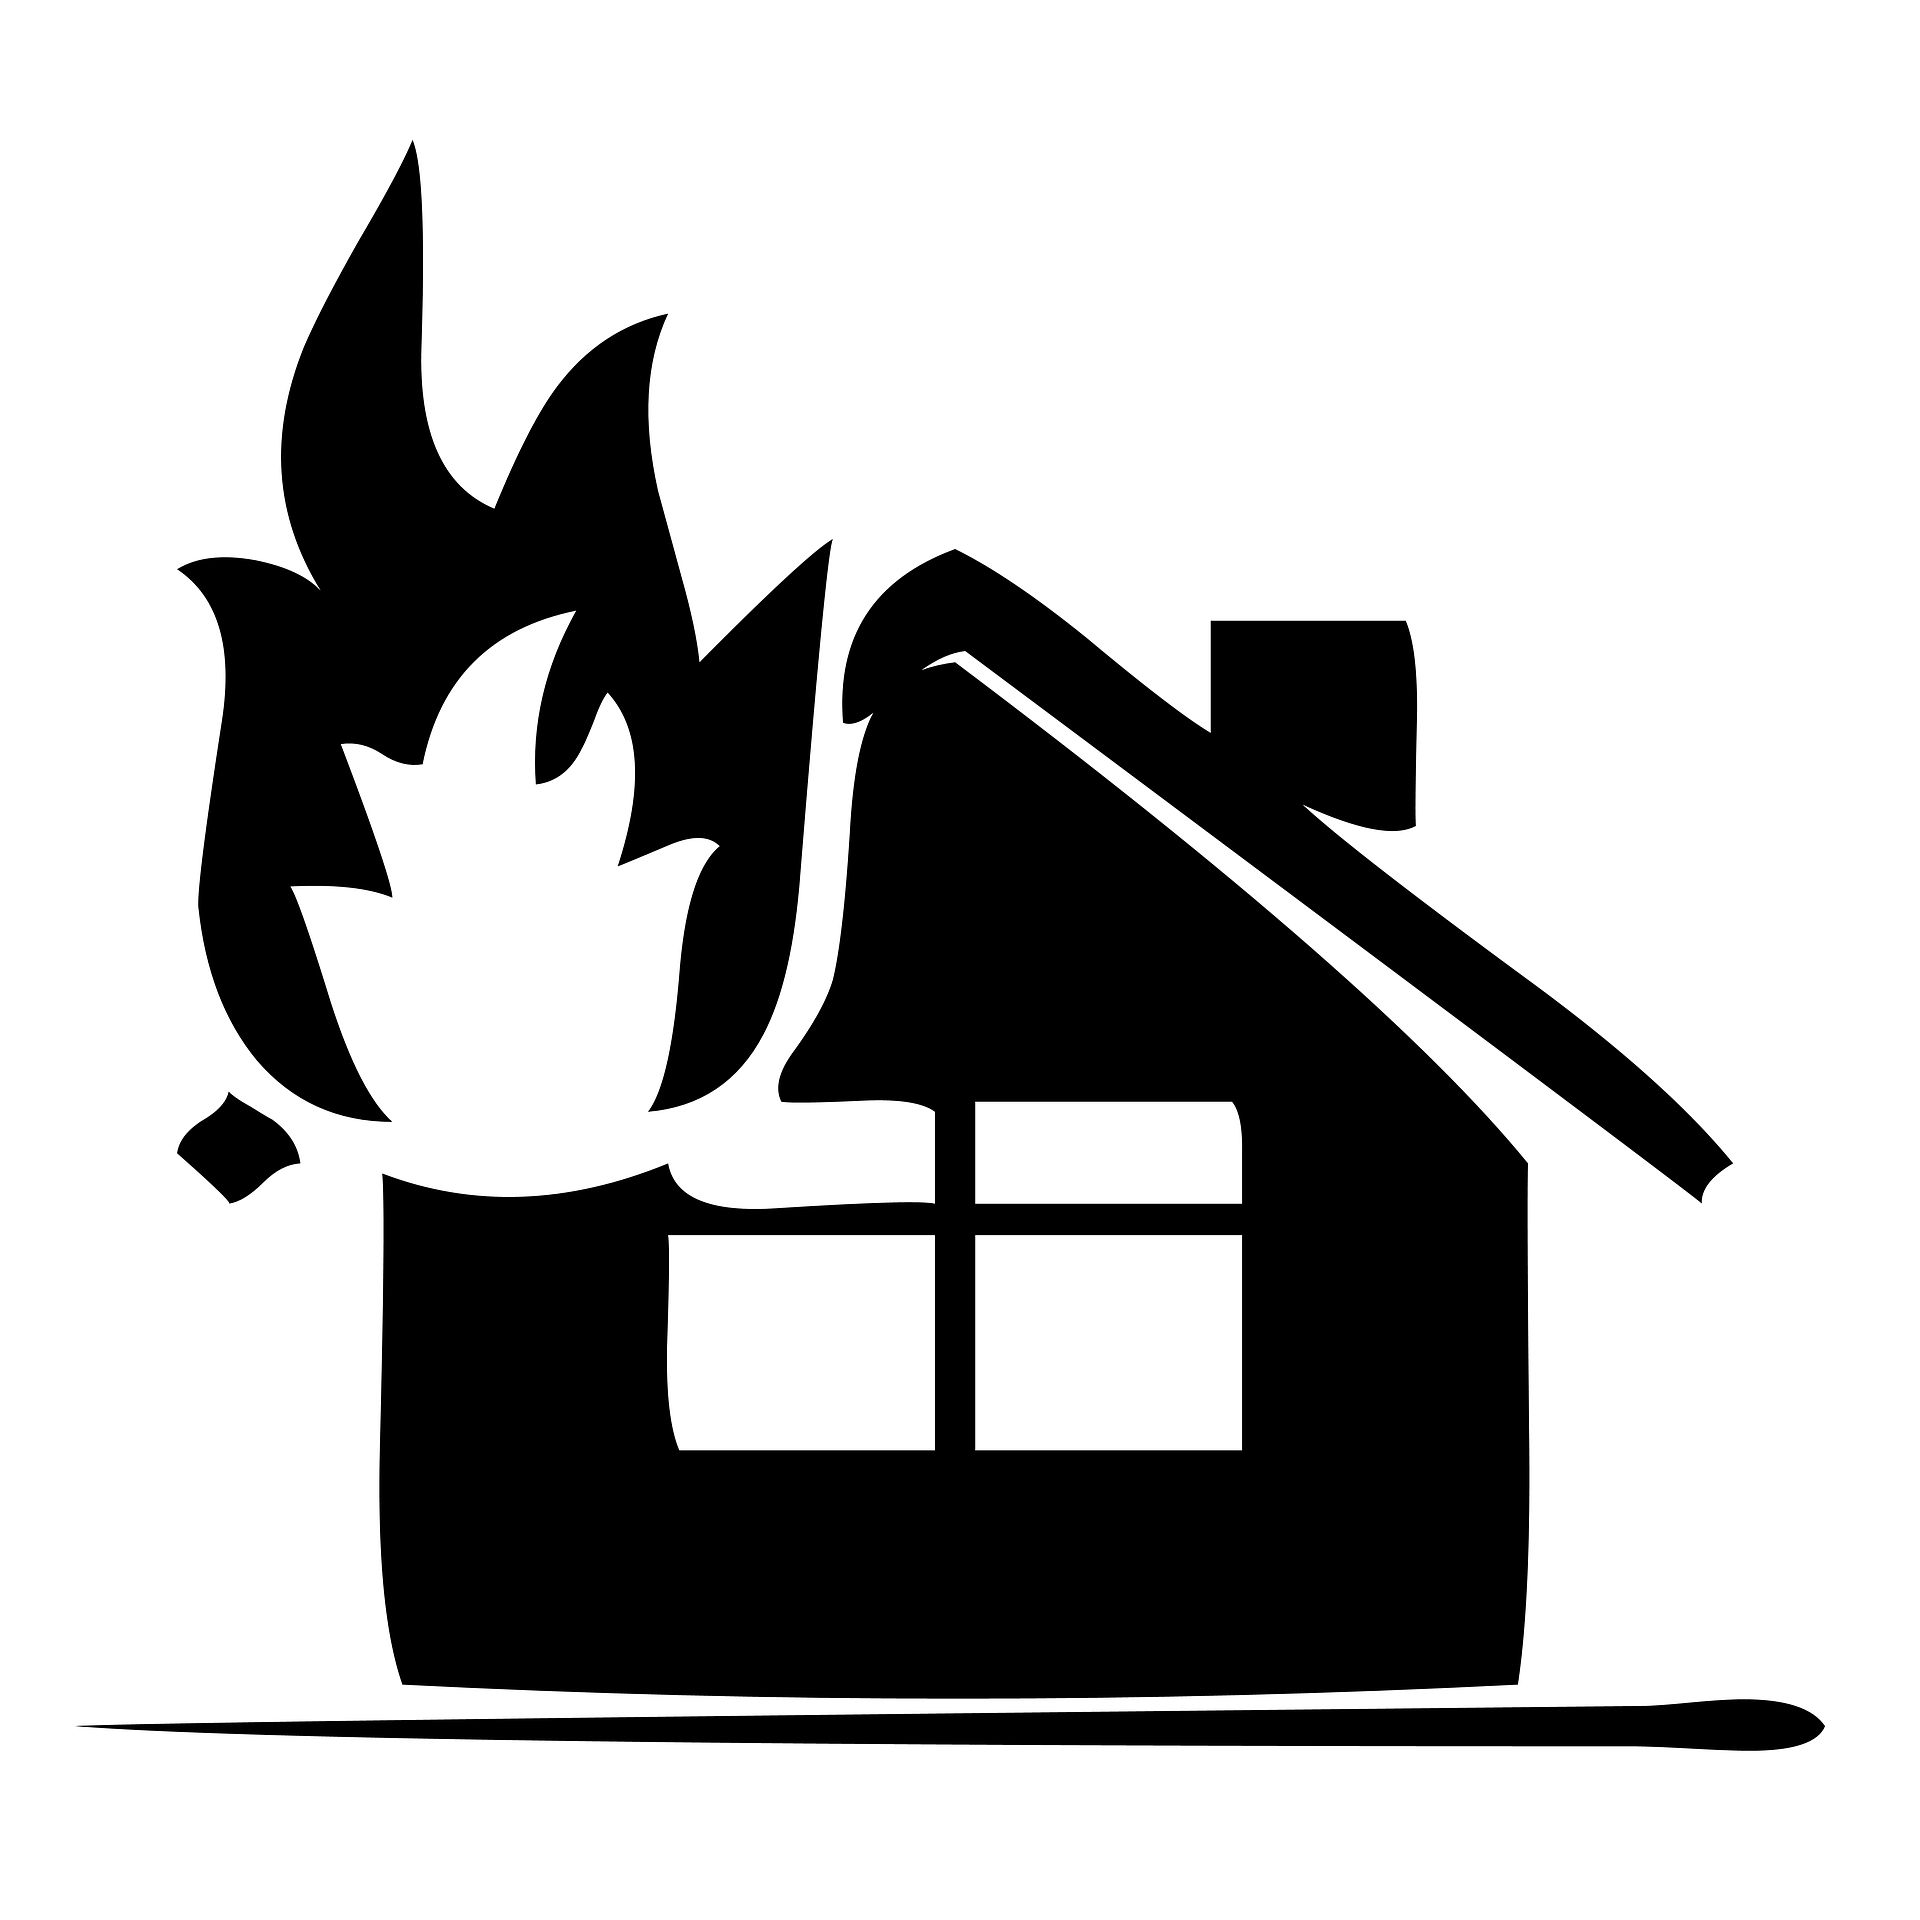 Fire Safety in Housing: Choosing the Right Alarm